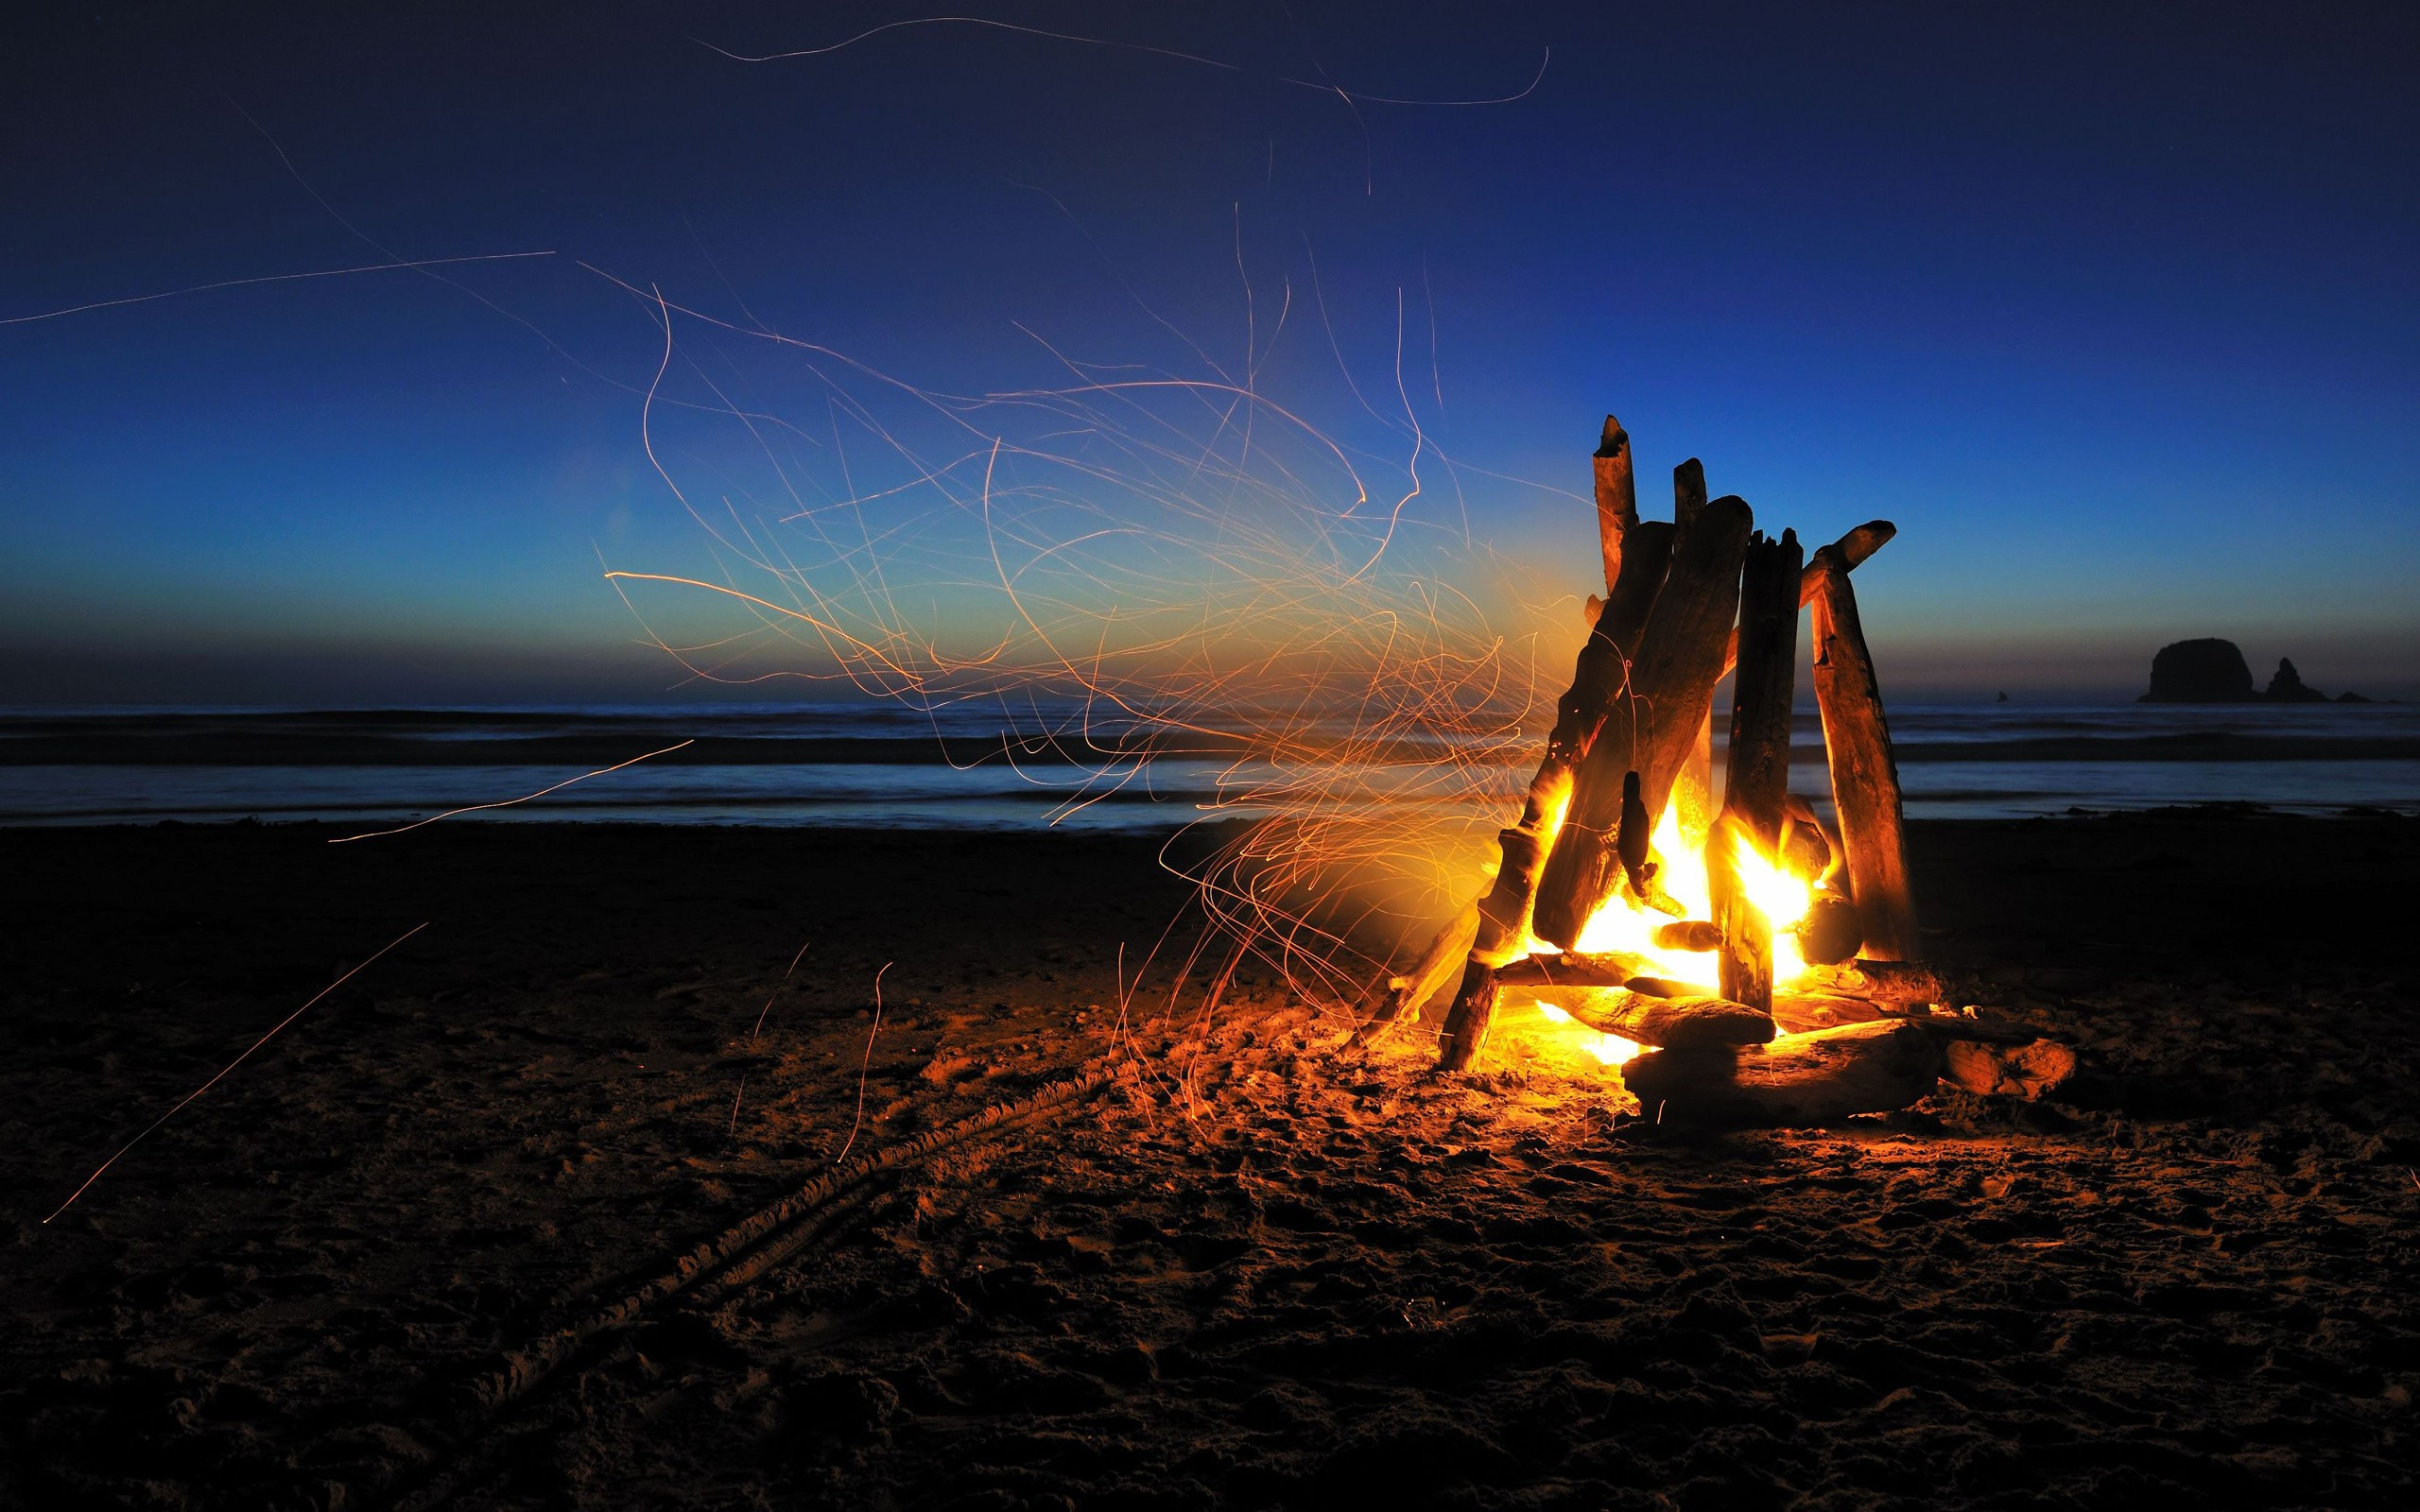 Beach campfire night